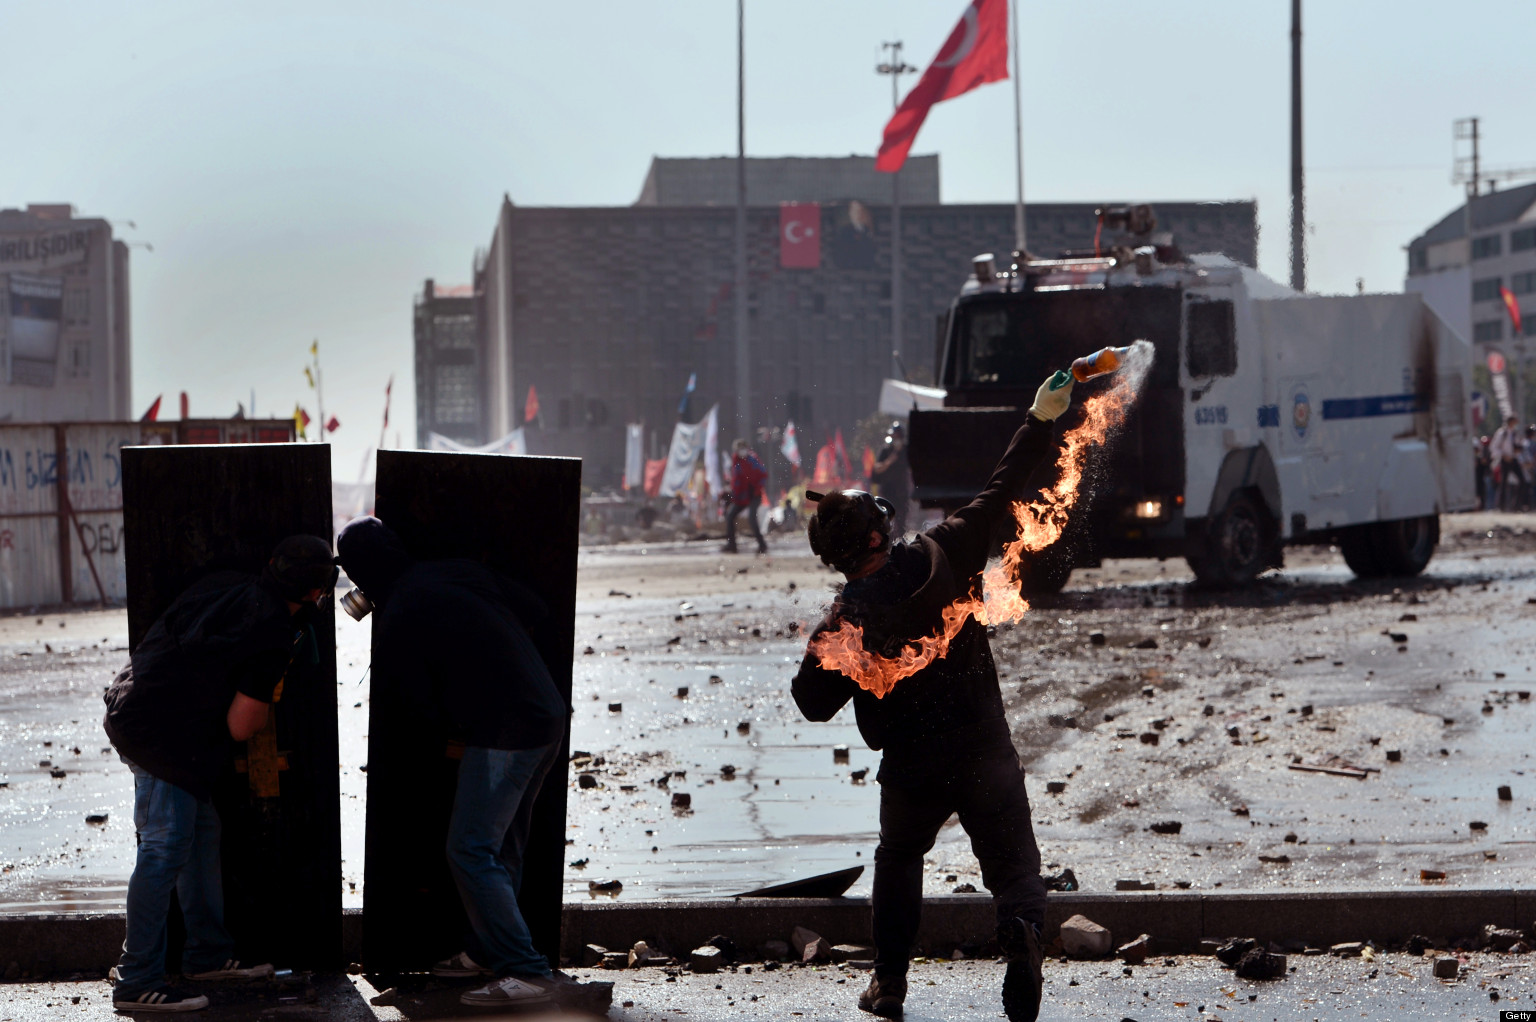 Taksim Turkey  city photo : Taksim Square: Turkish Protesters Throw Molotov Cocktails At Police ...